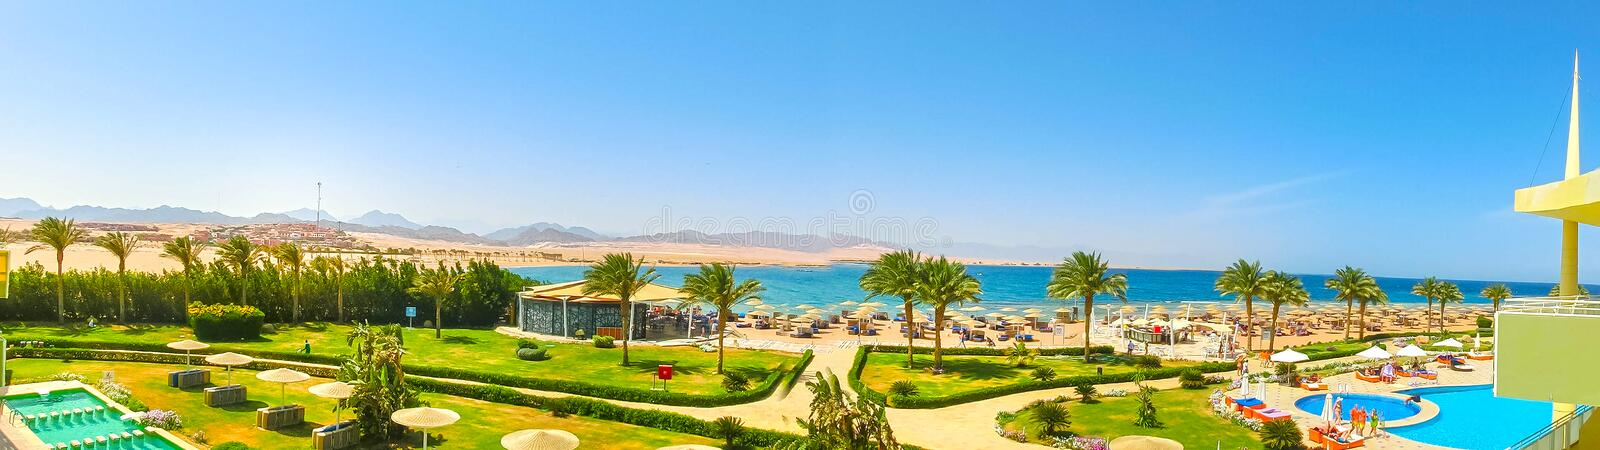 Sharm El Sheikh, Egypt - April 8, 2017: The view of luxury hotel Barcelo Tiran Sharm 5 stars at day with blue sky. Sharm El Sheikh, Egypt - April 8, 2017: The stock photography